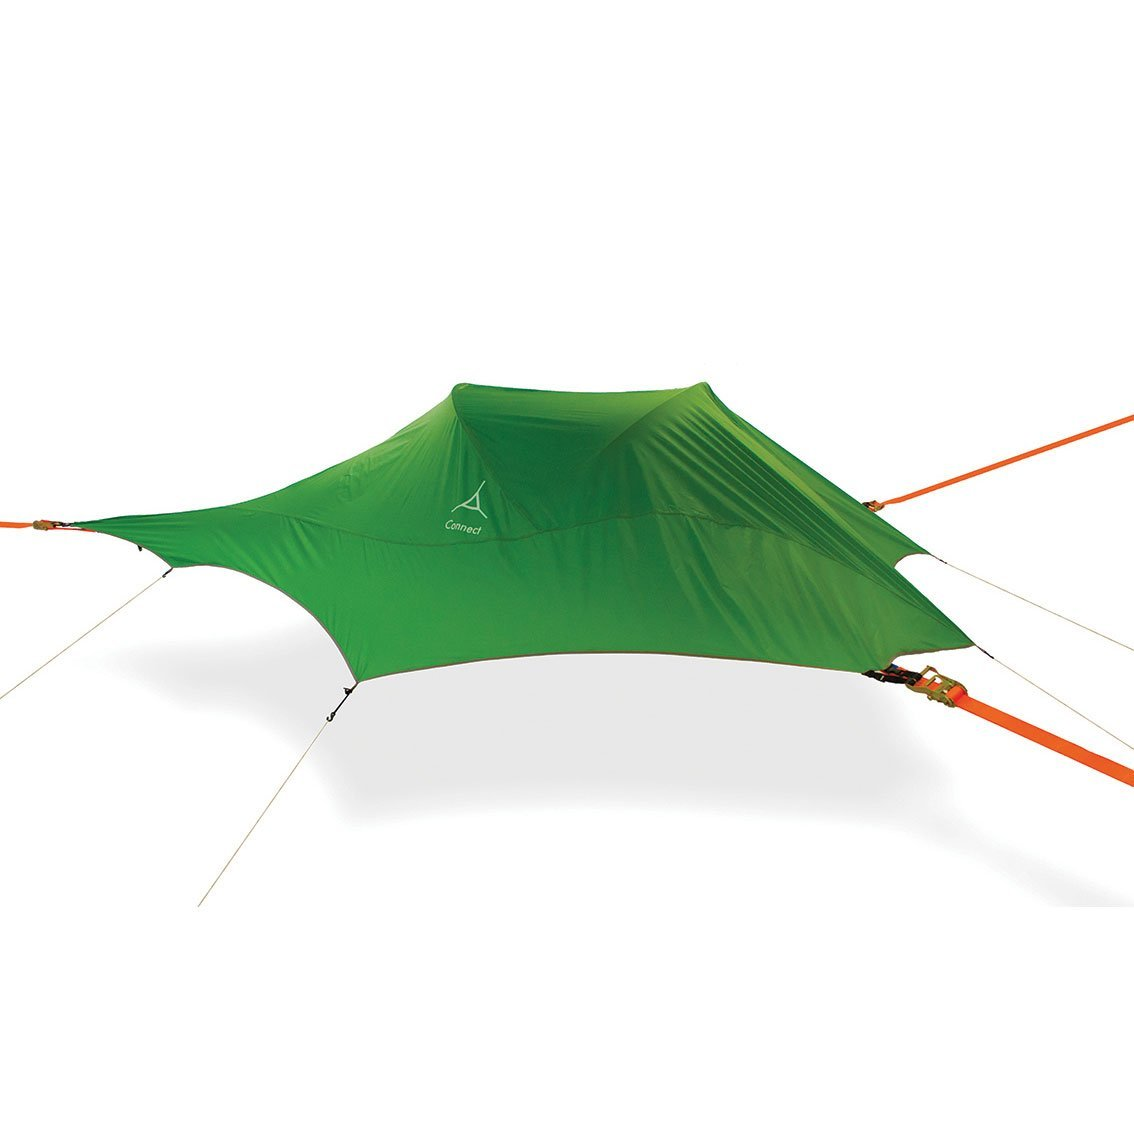 Tentsile | Connect Tree Tent | 2 Person Suspended Hammock Tent - Forest Green